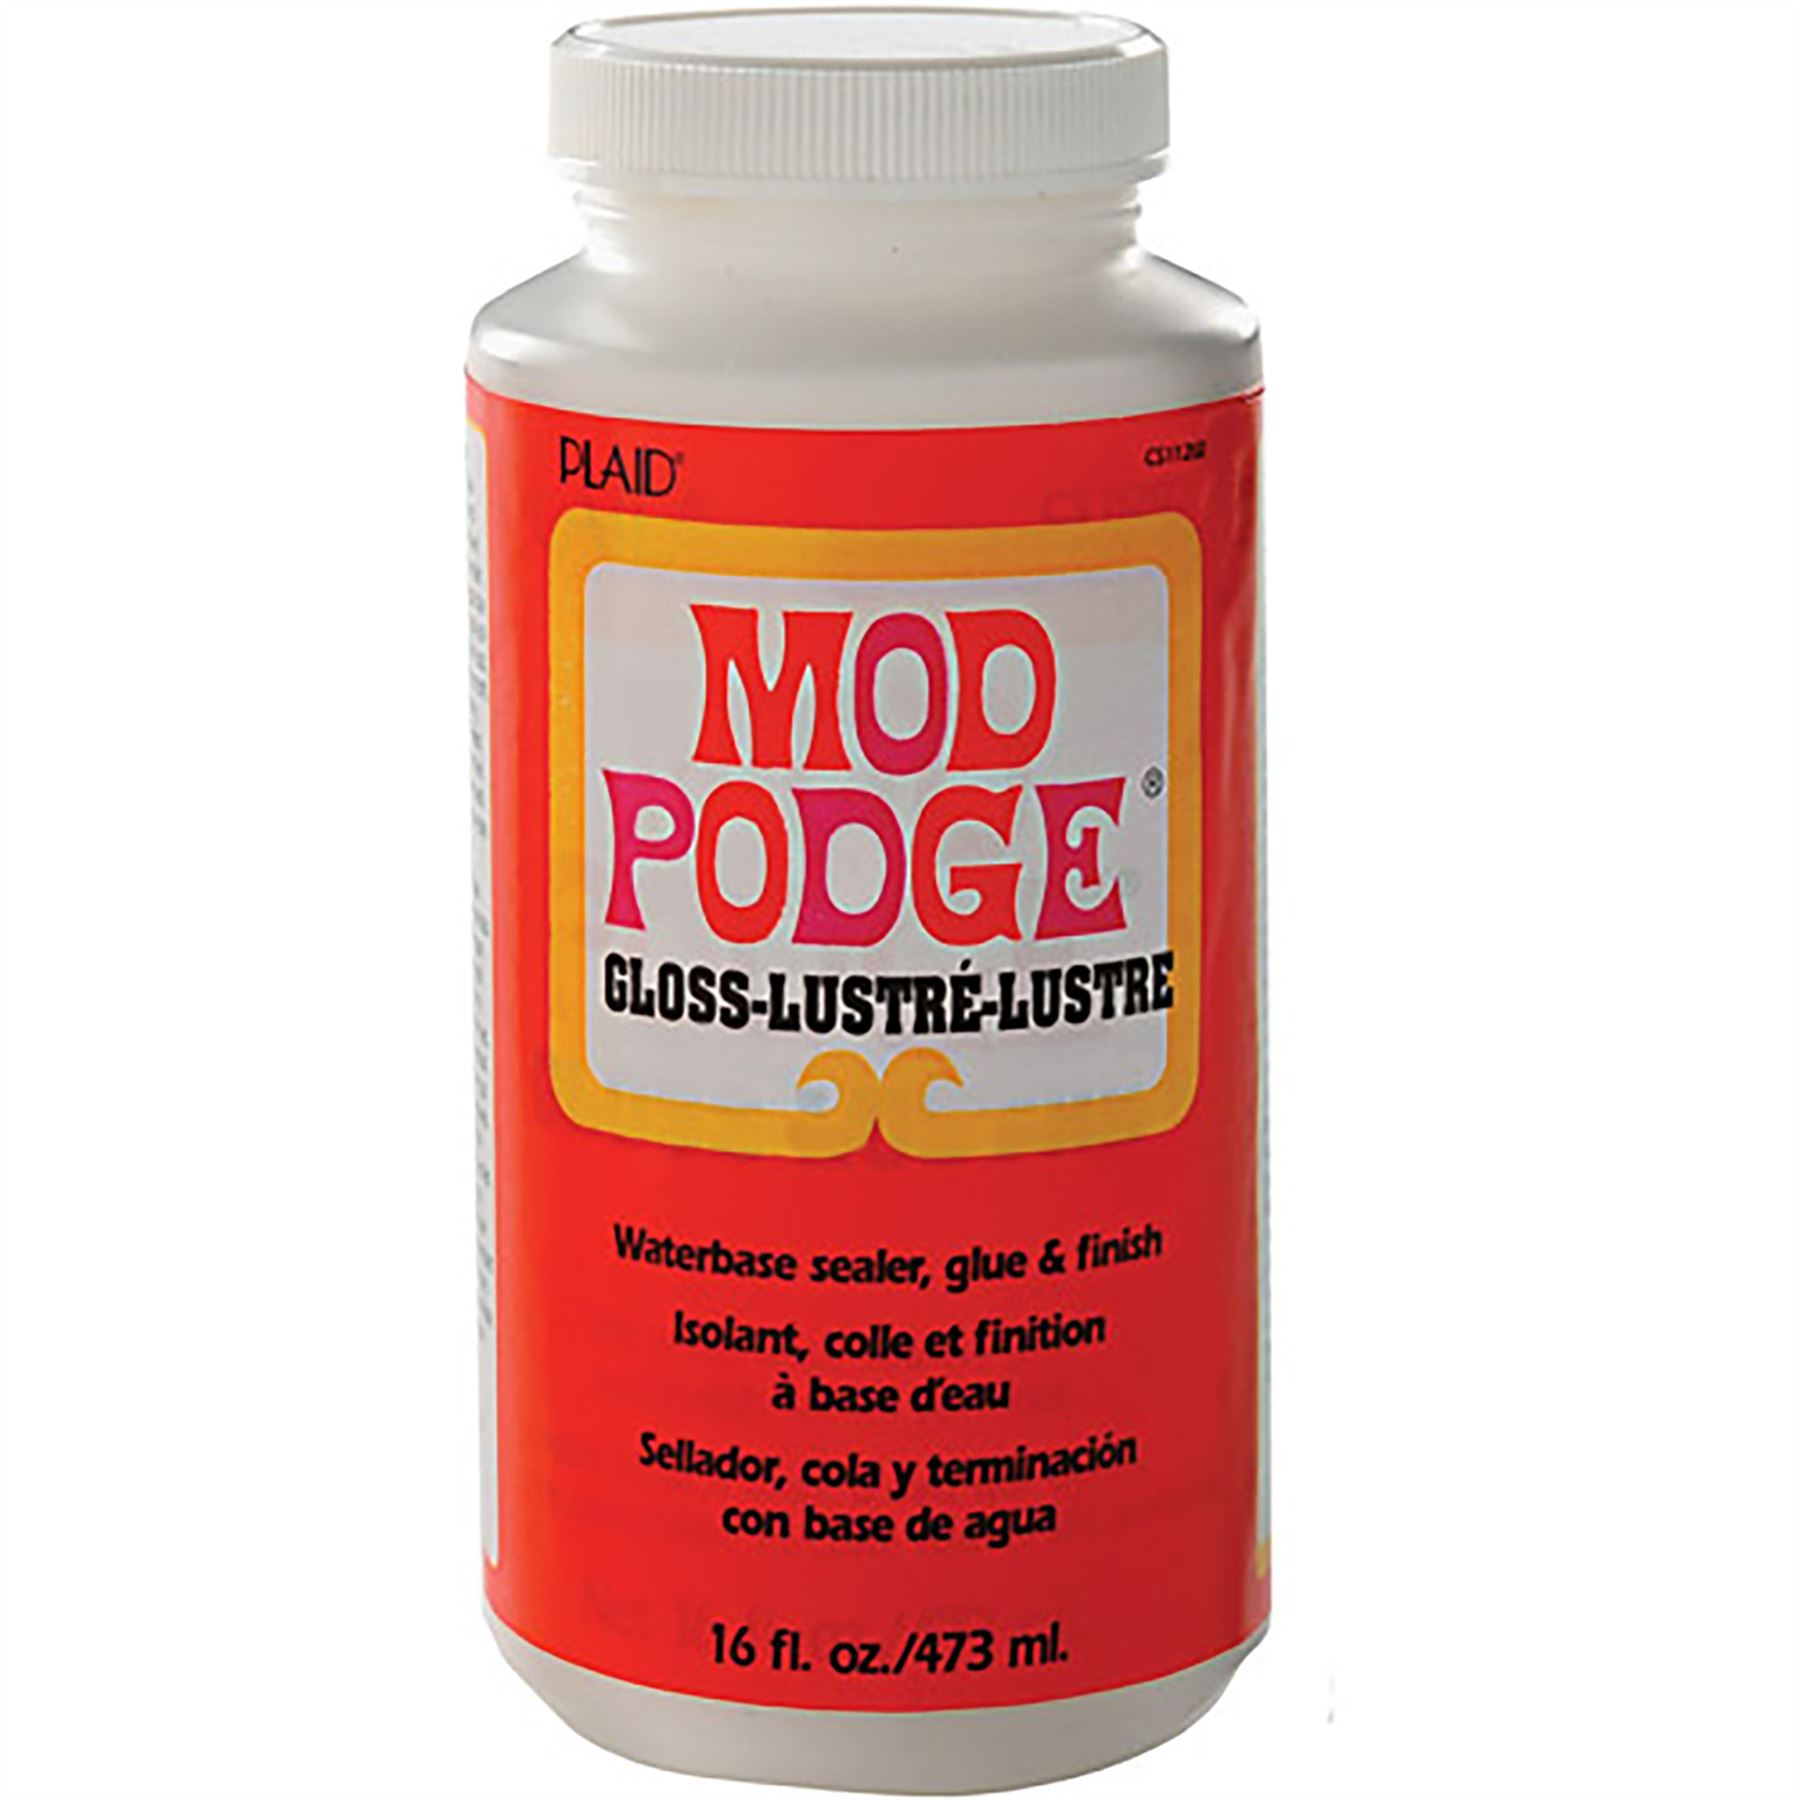 16oz mod podge gloss glue sealer wine glass glitter art